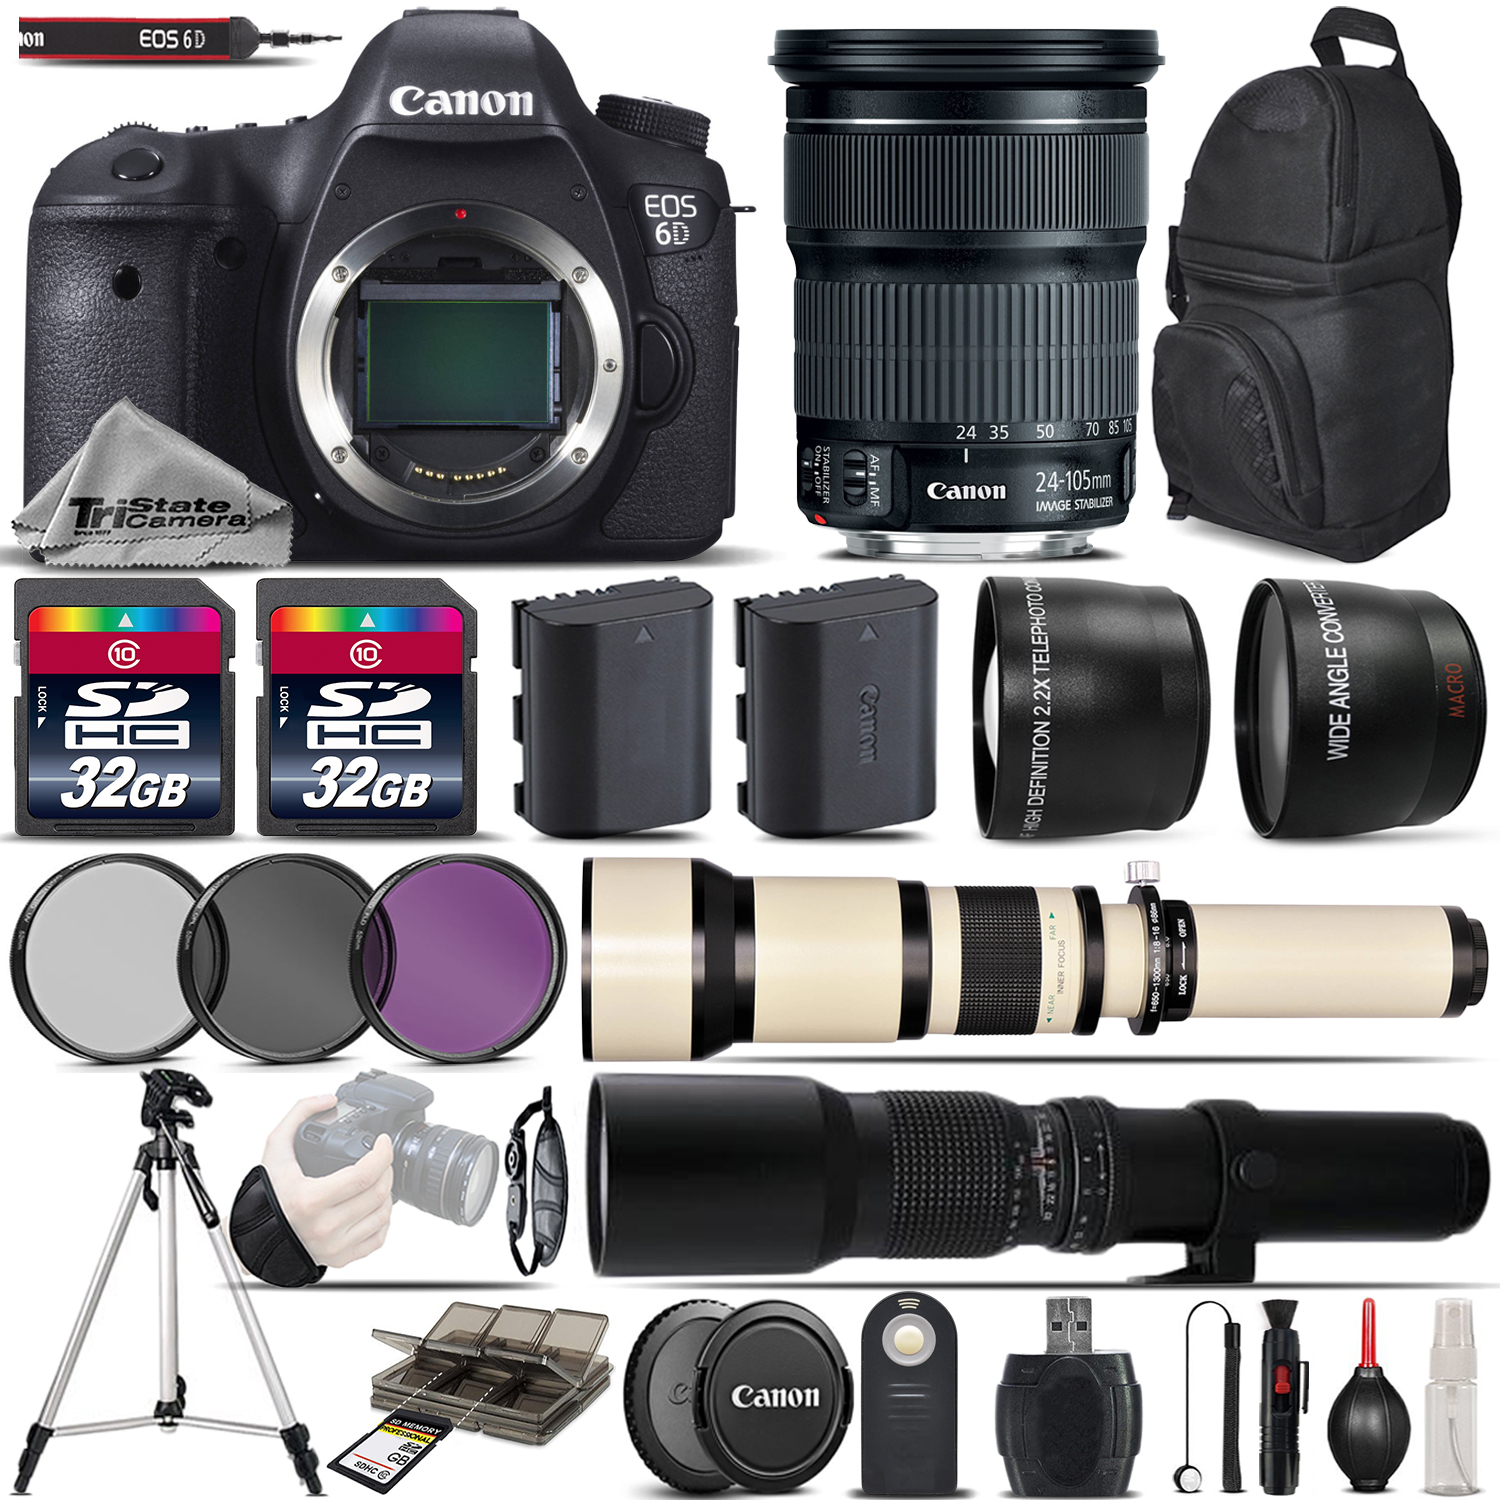 Canon EOS 6D DSLR WiFi/GPS Camera + 24-105mm IS STM Lens ...